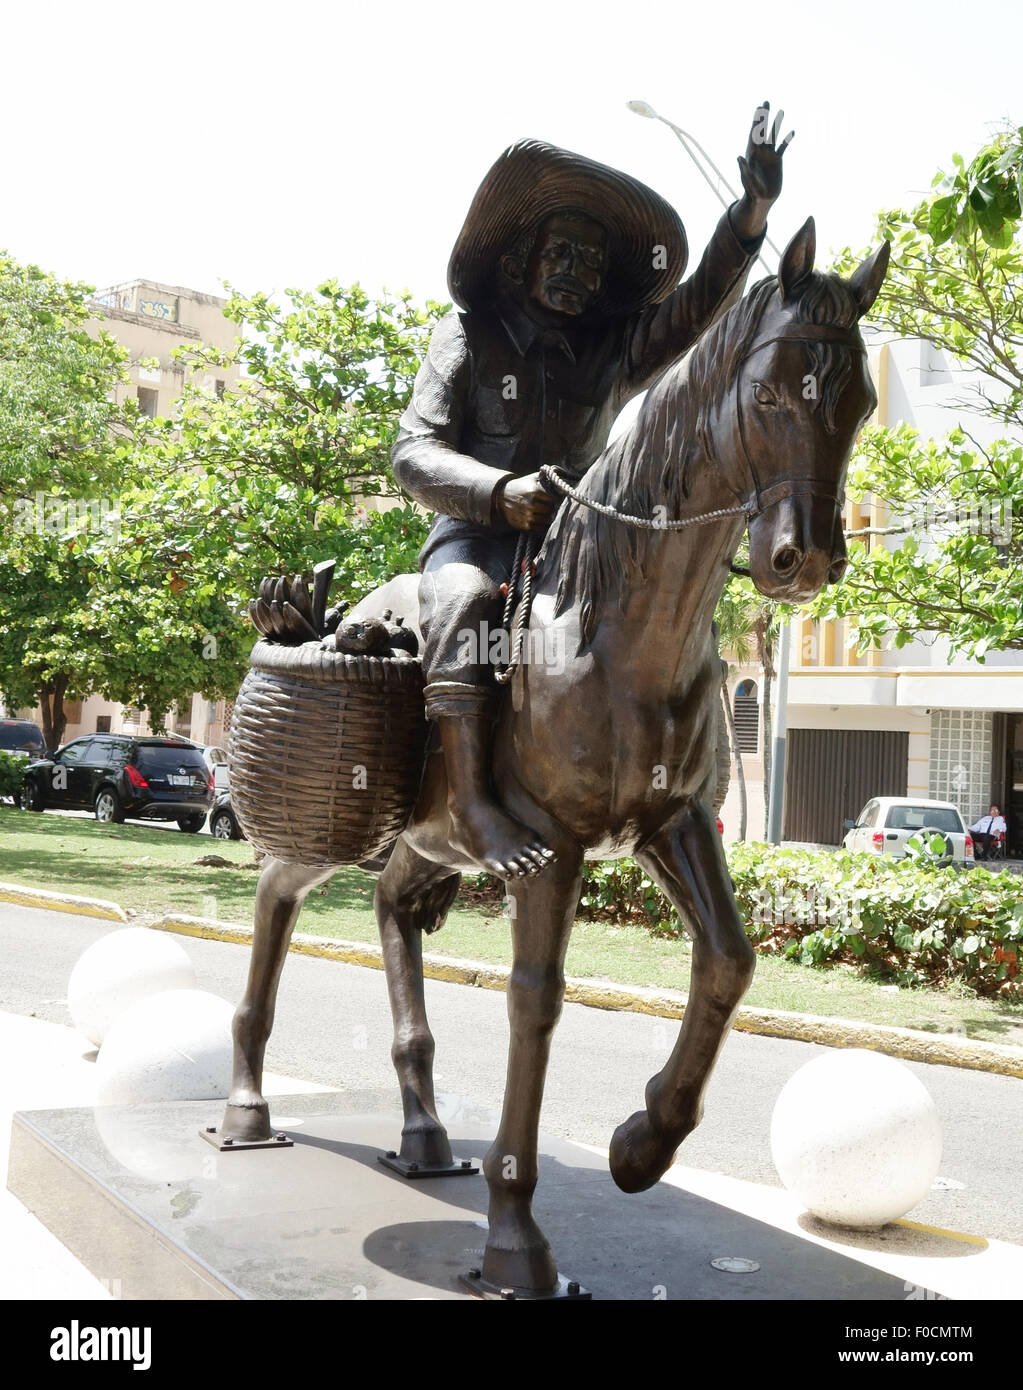 a bronze statue celebrating the rural Puerto Rican farmer of earlier times - Stock Image